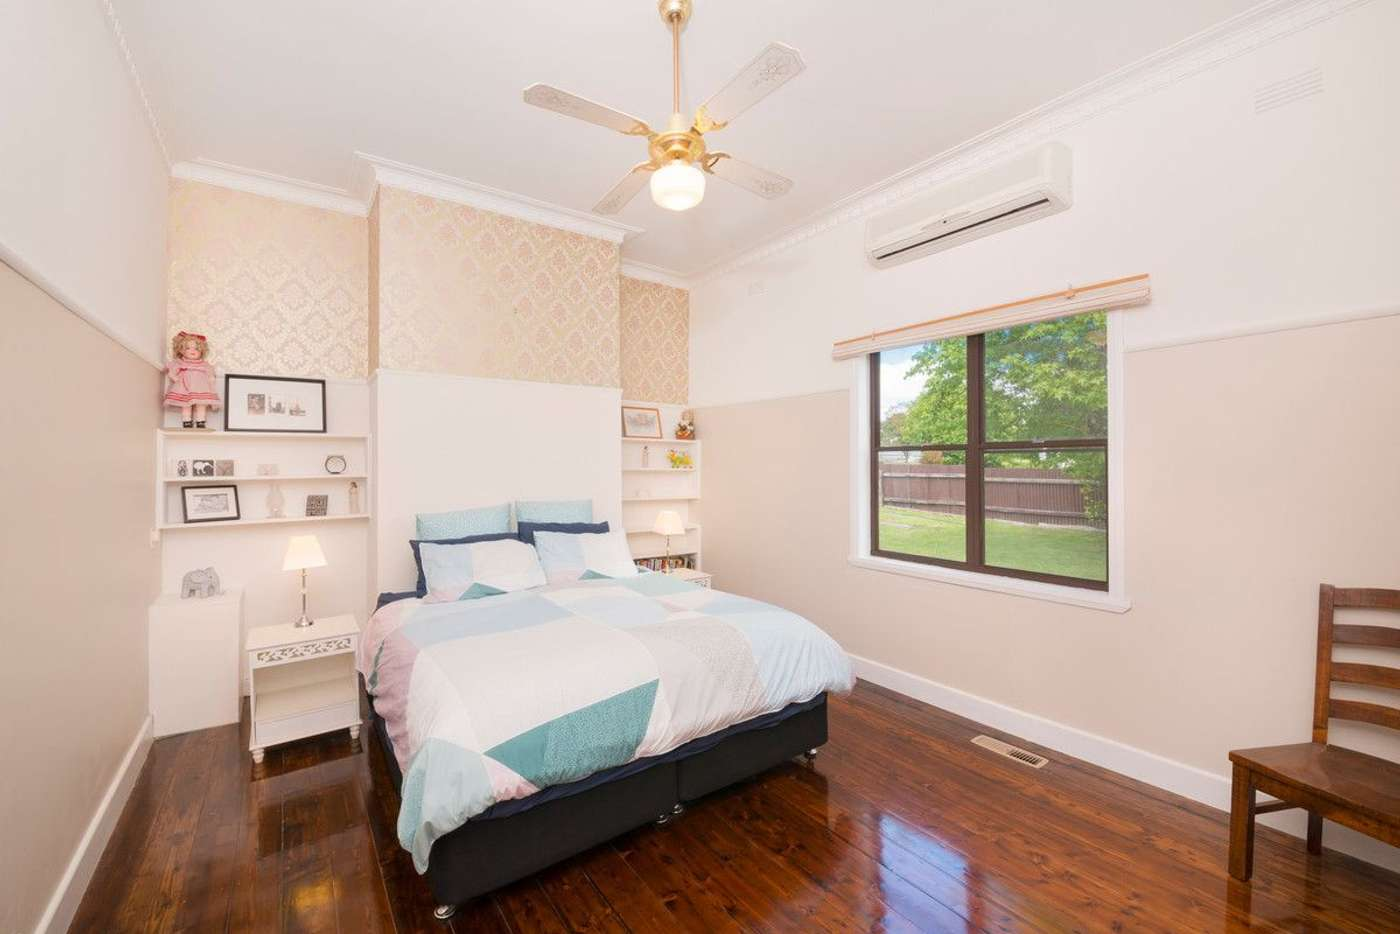 Fifth view of Homely house listing, 14 Hopetoun Street, Camperdown VIC 3260